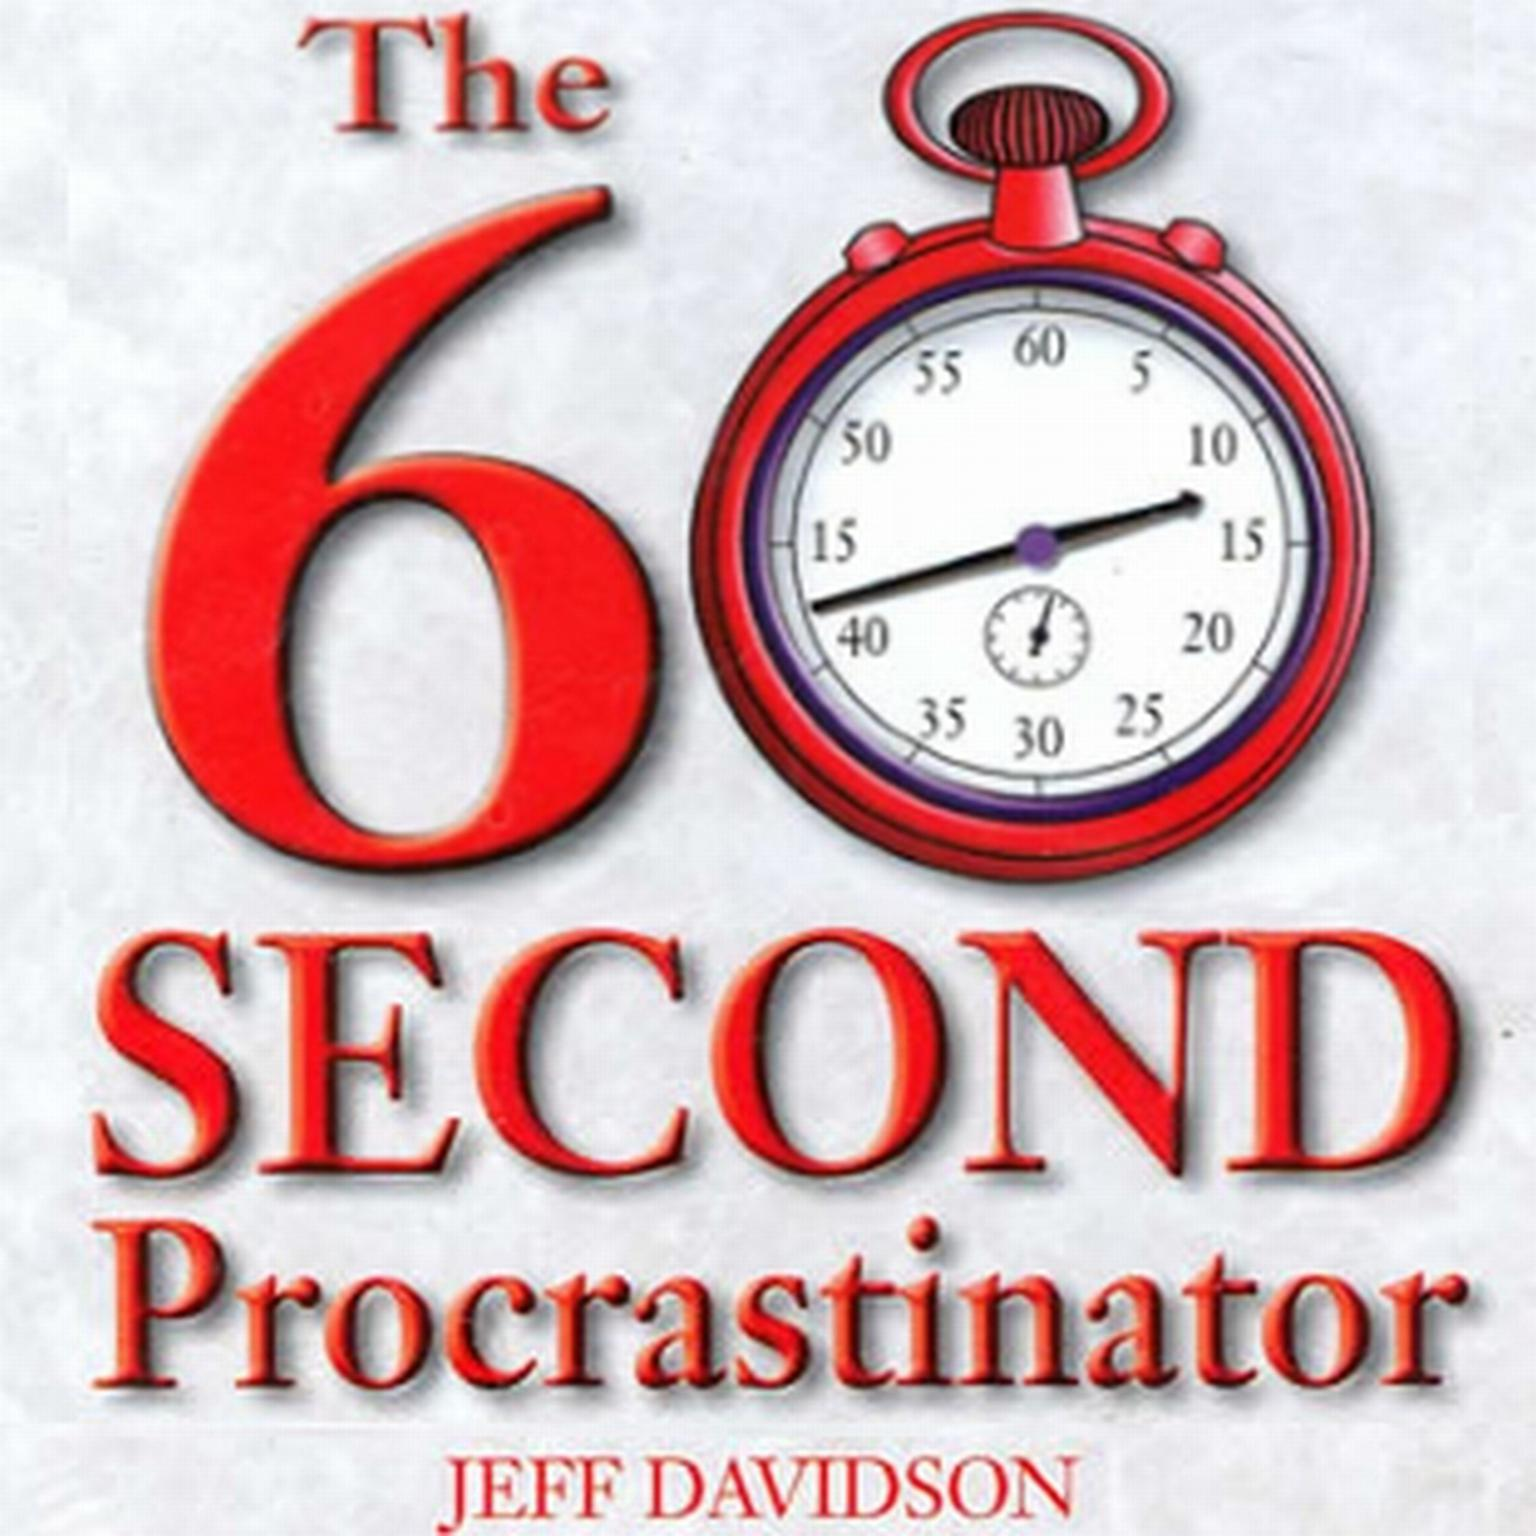 Printable The 60 Second Procrastinator: Sixty Solid Techniques to Jump-Start Any Project and Get Your Life in Gear! Audiobook Cover Art